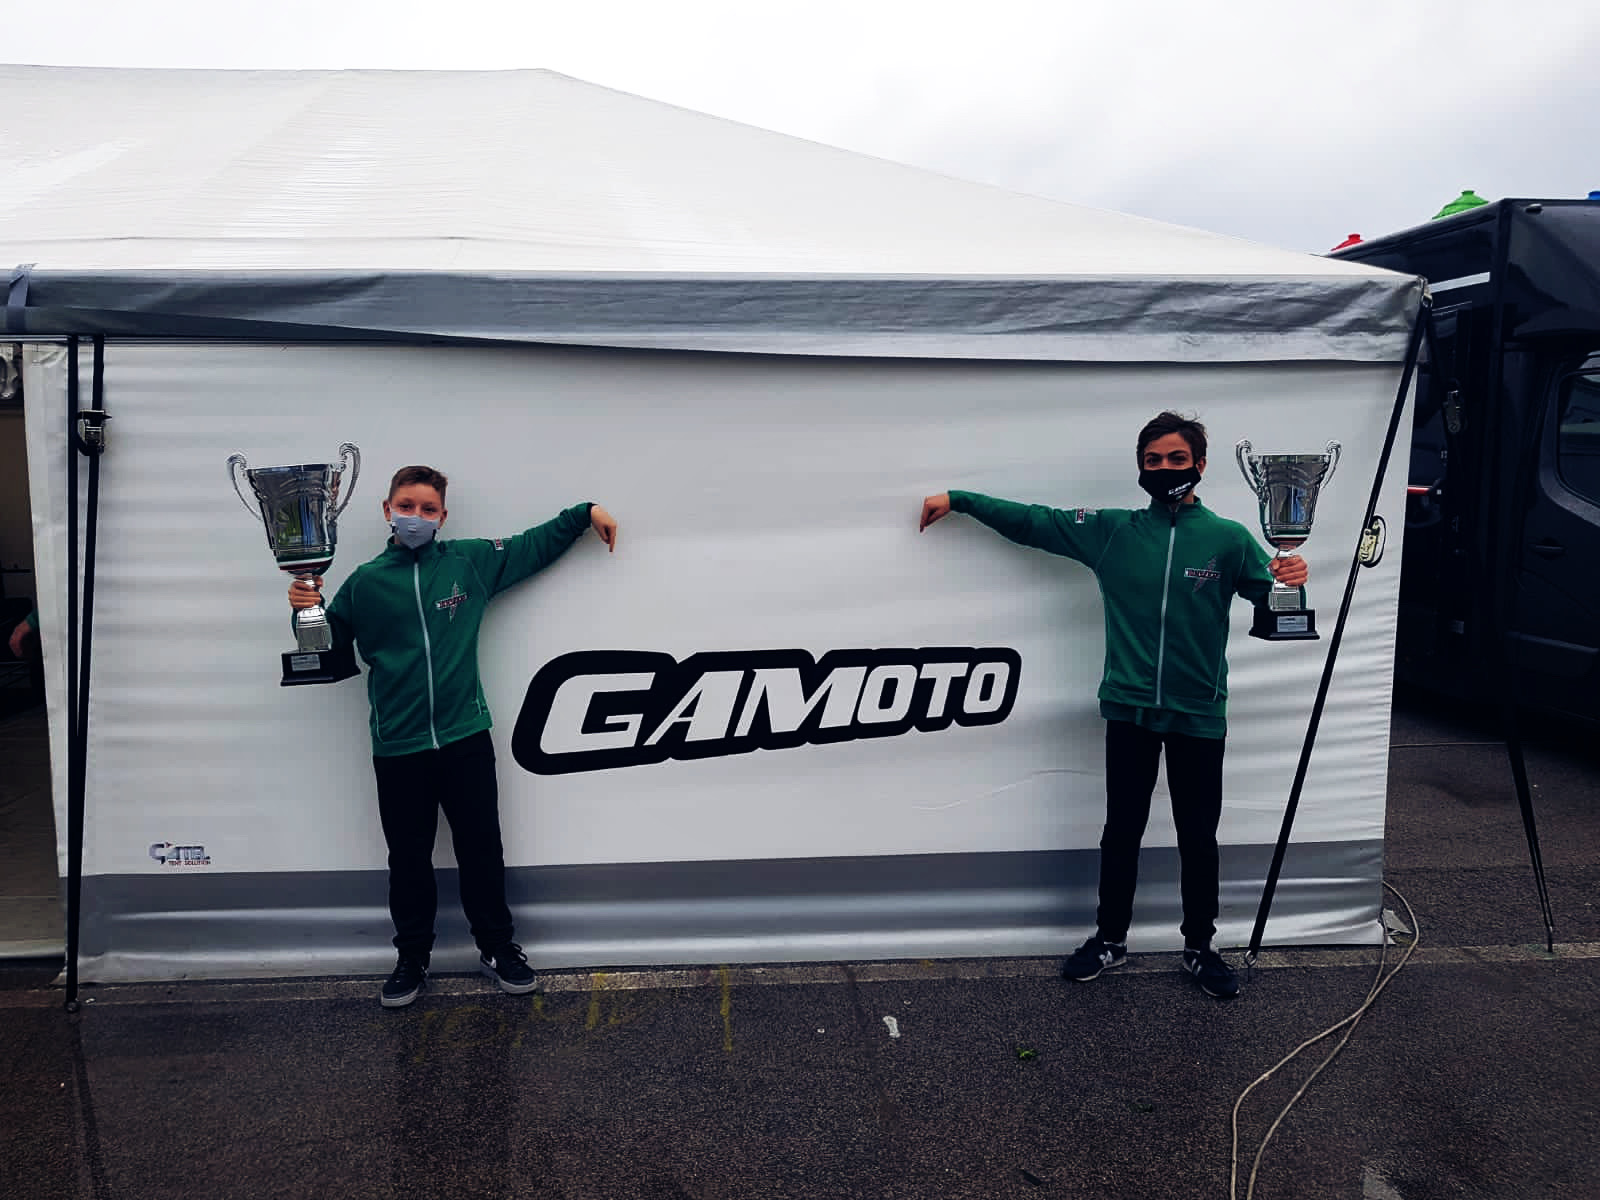 A double win for Gamoto Kart at Trofeo Nazionale